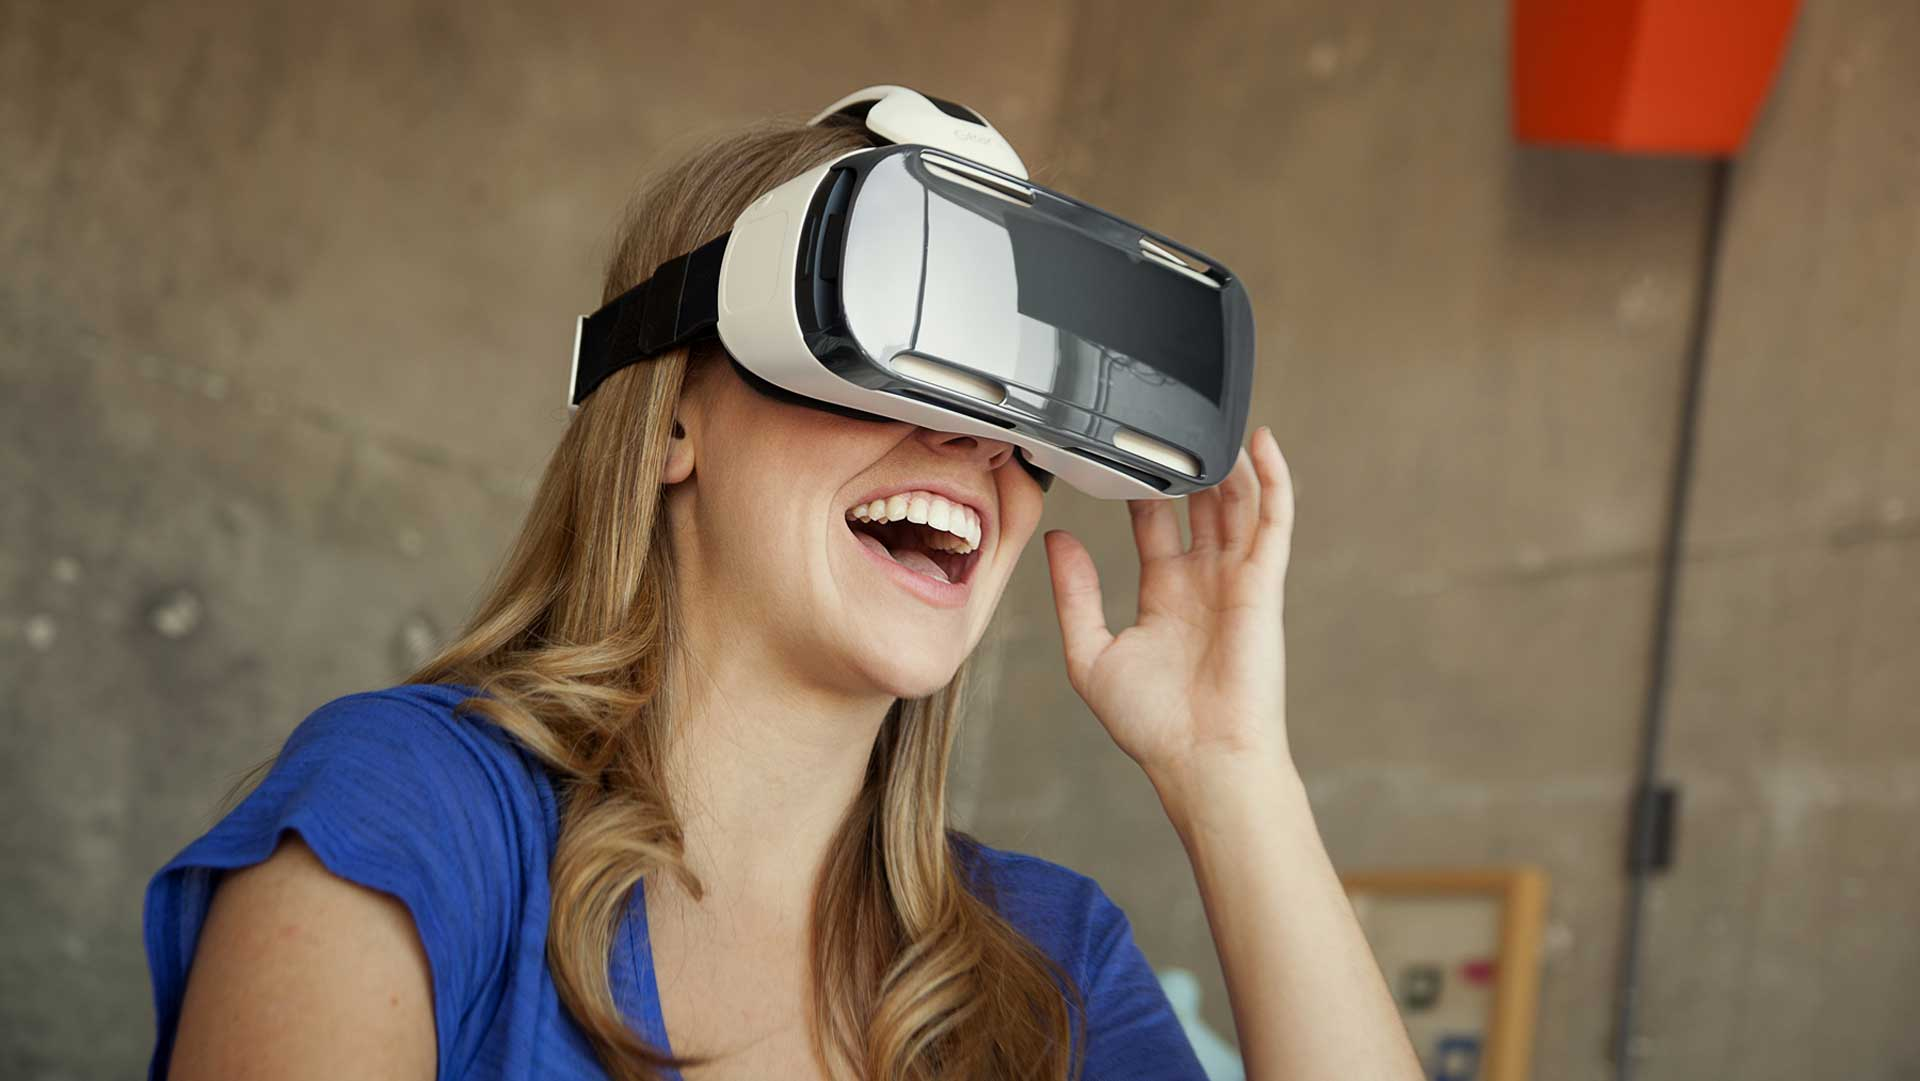 5 myths about virtual reality